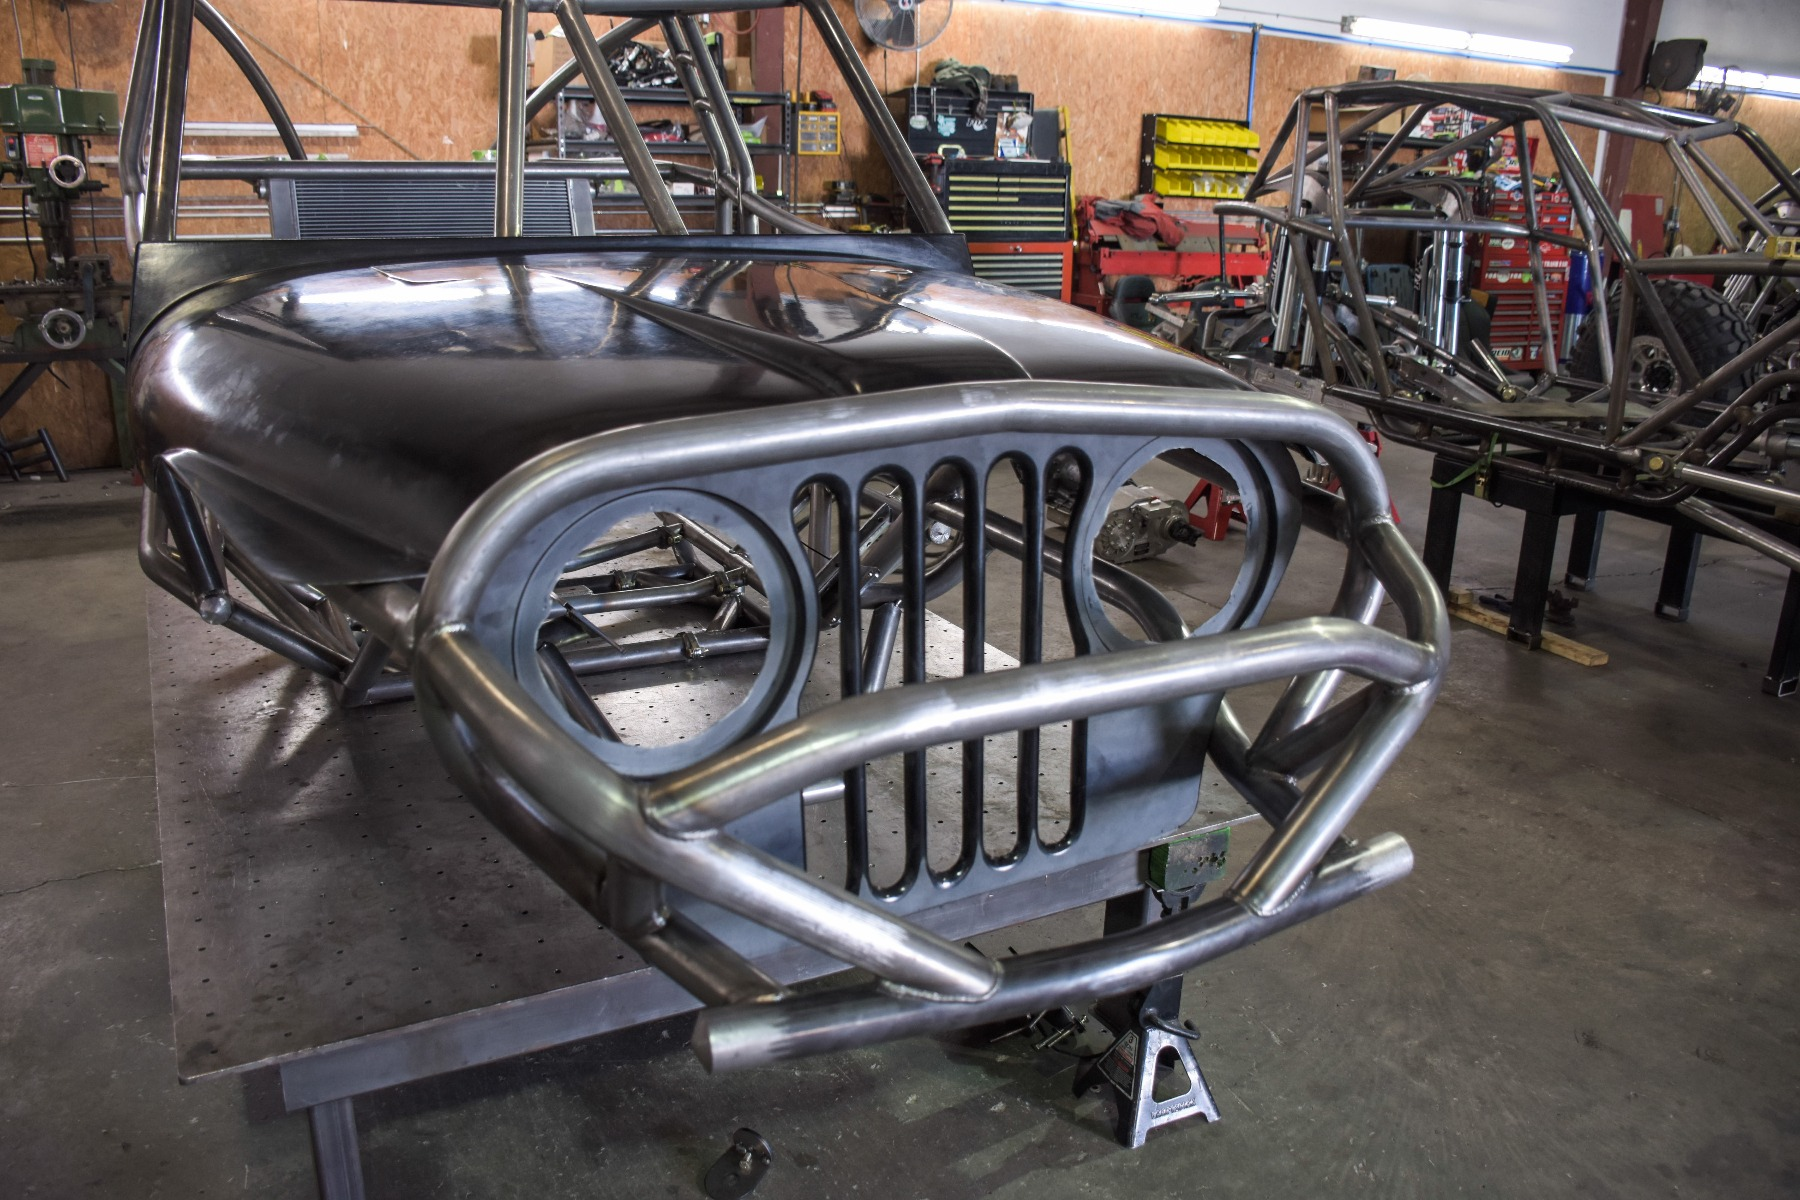 Wide Open Design Evolution Rock Crawler chassis with jeep hood and grill front detail 16